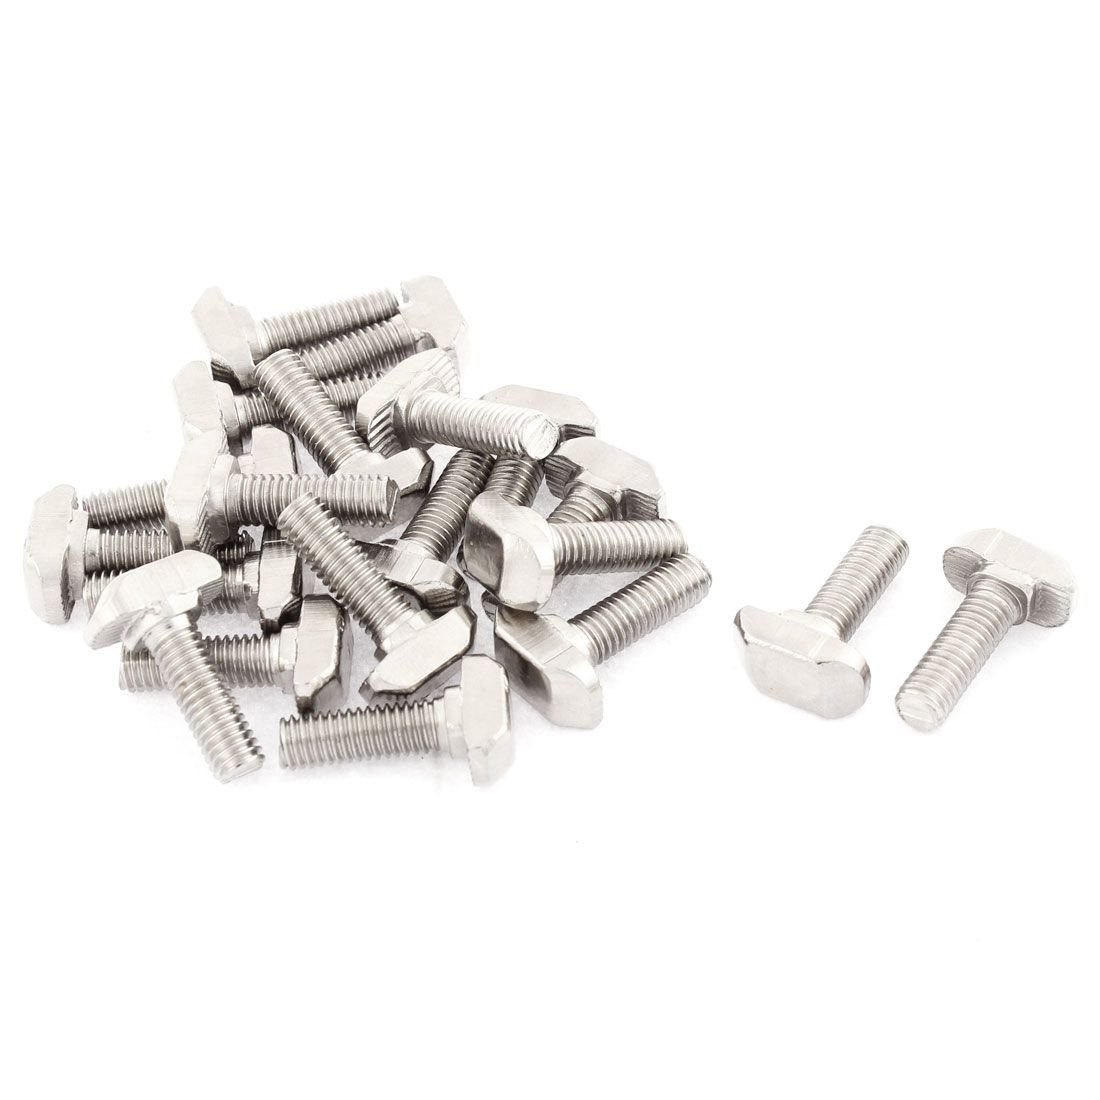 M6 Thread Metal T-Slot Drop-In Stud Sliding Screw Bolt Silver Tone 20pcs